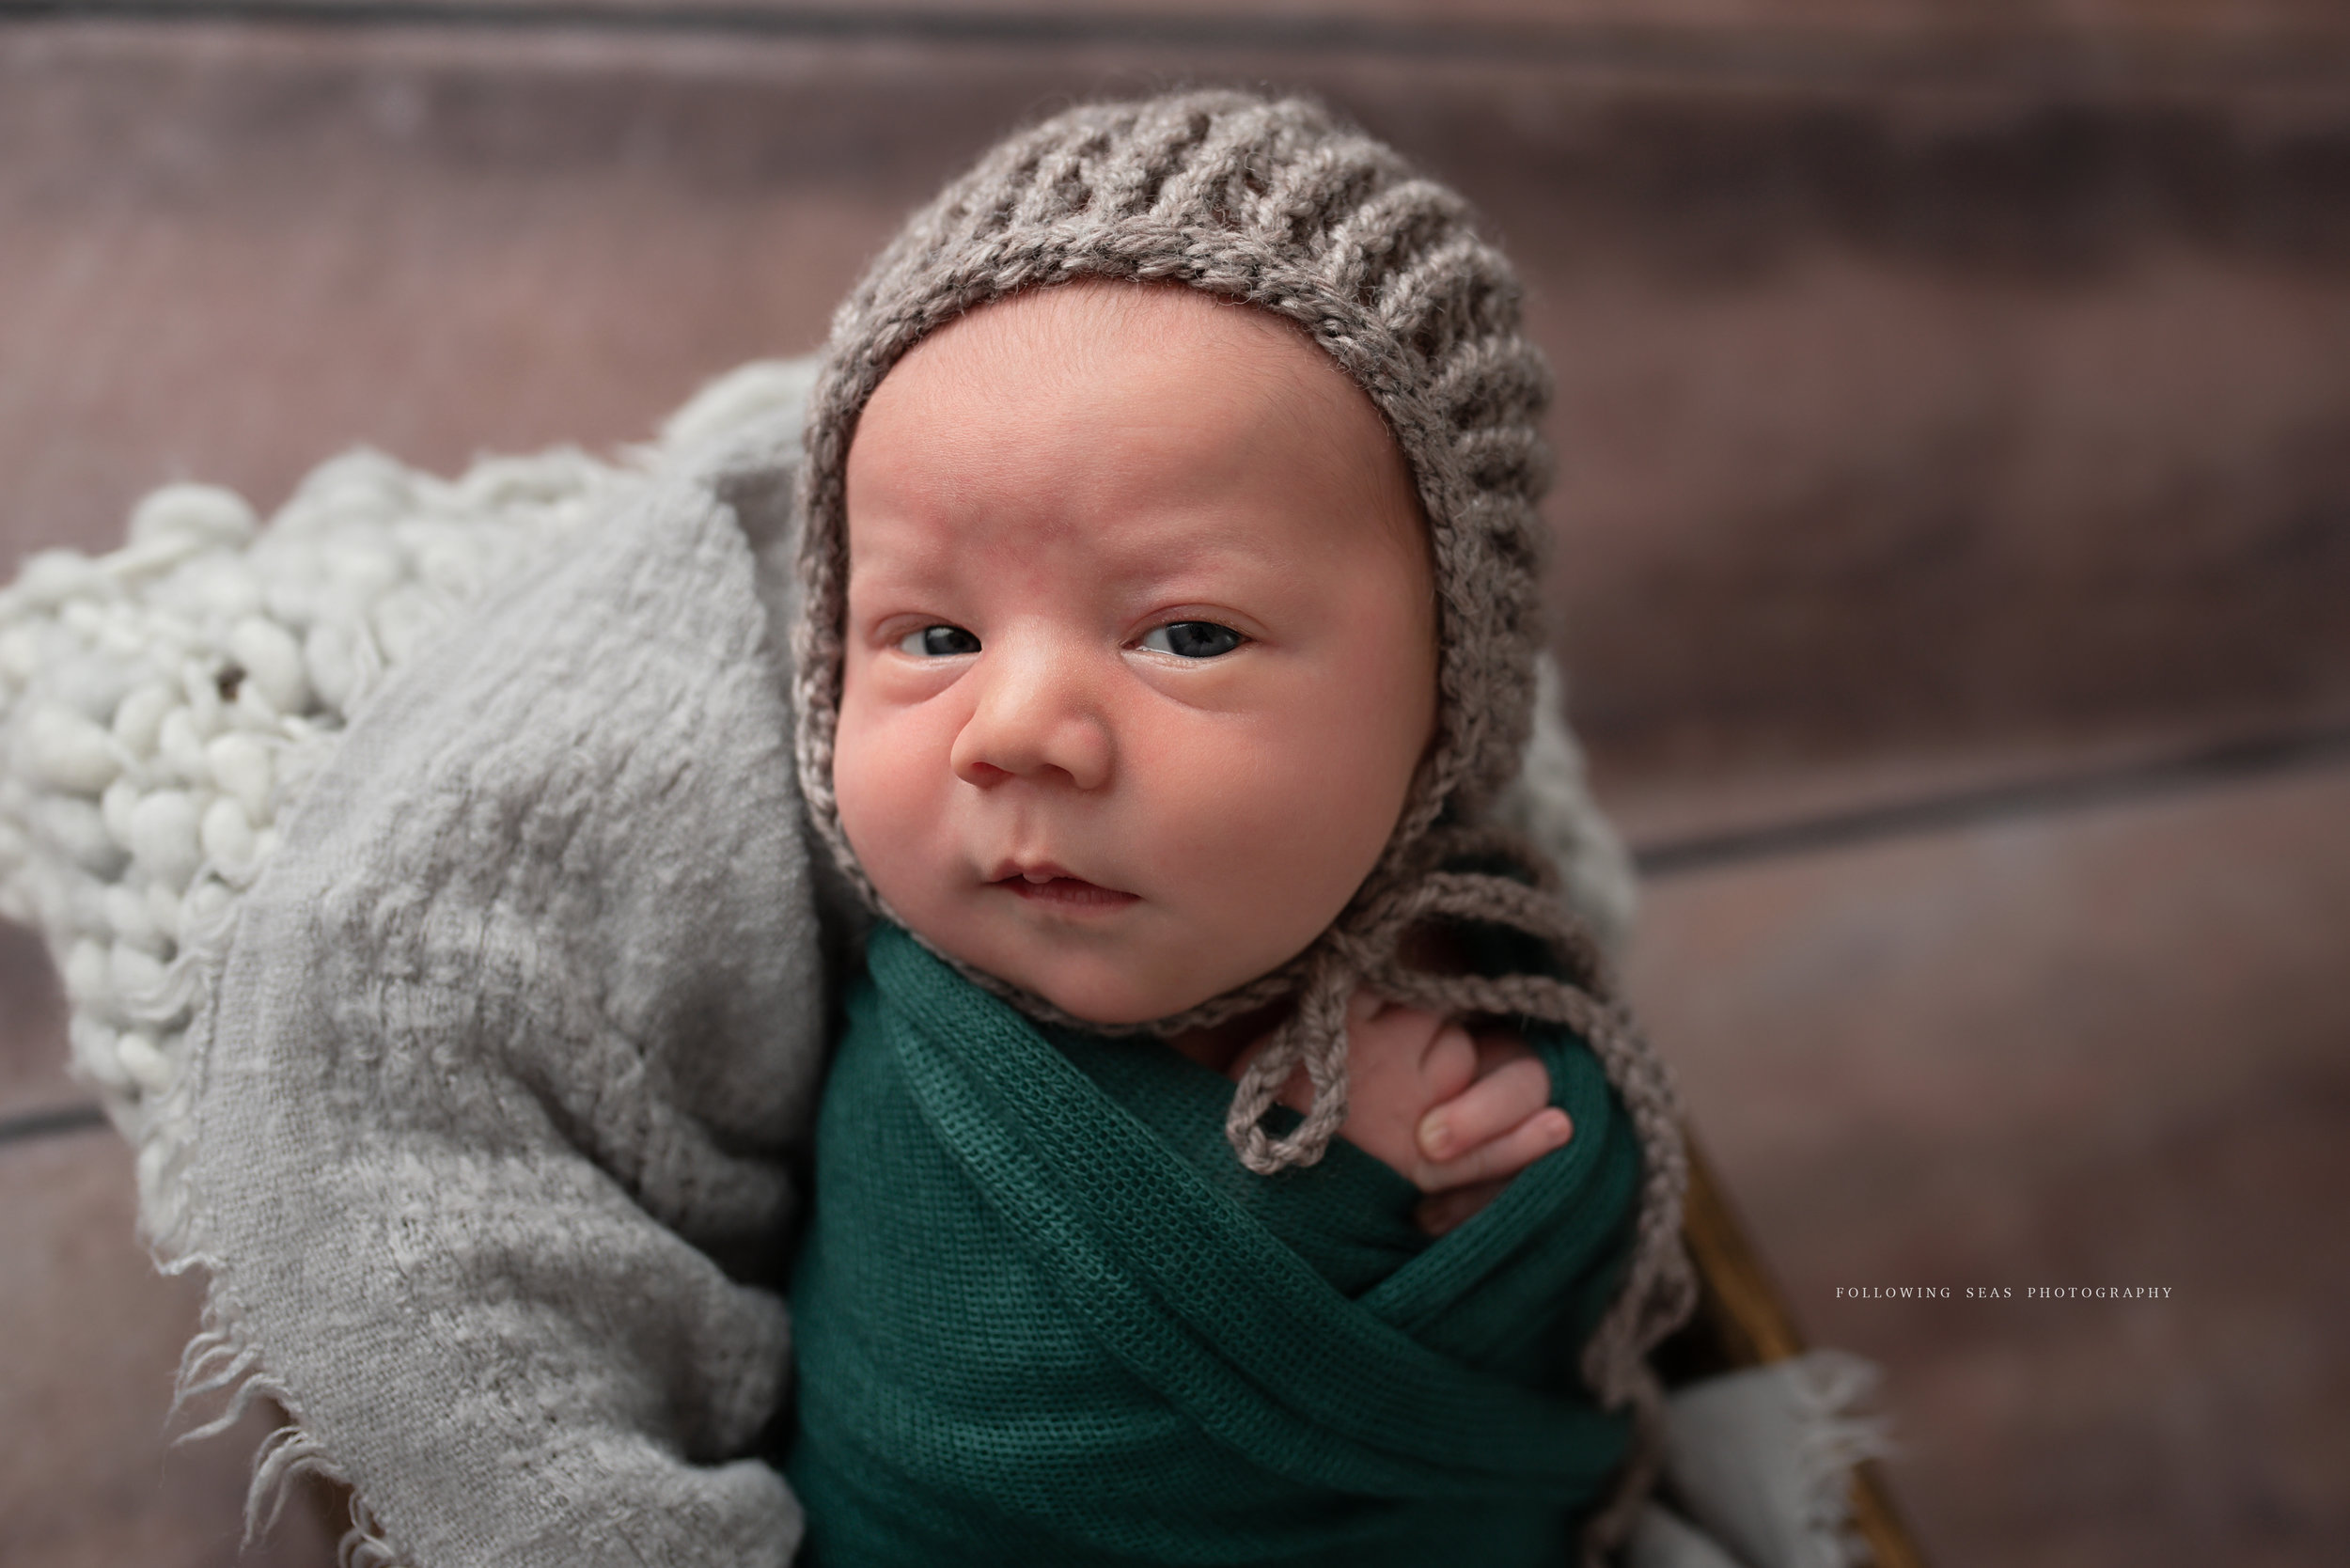 Charleston-Newborn-Photographer-Following-Seas-Photography-FSP_2283-2.jpg